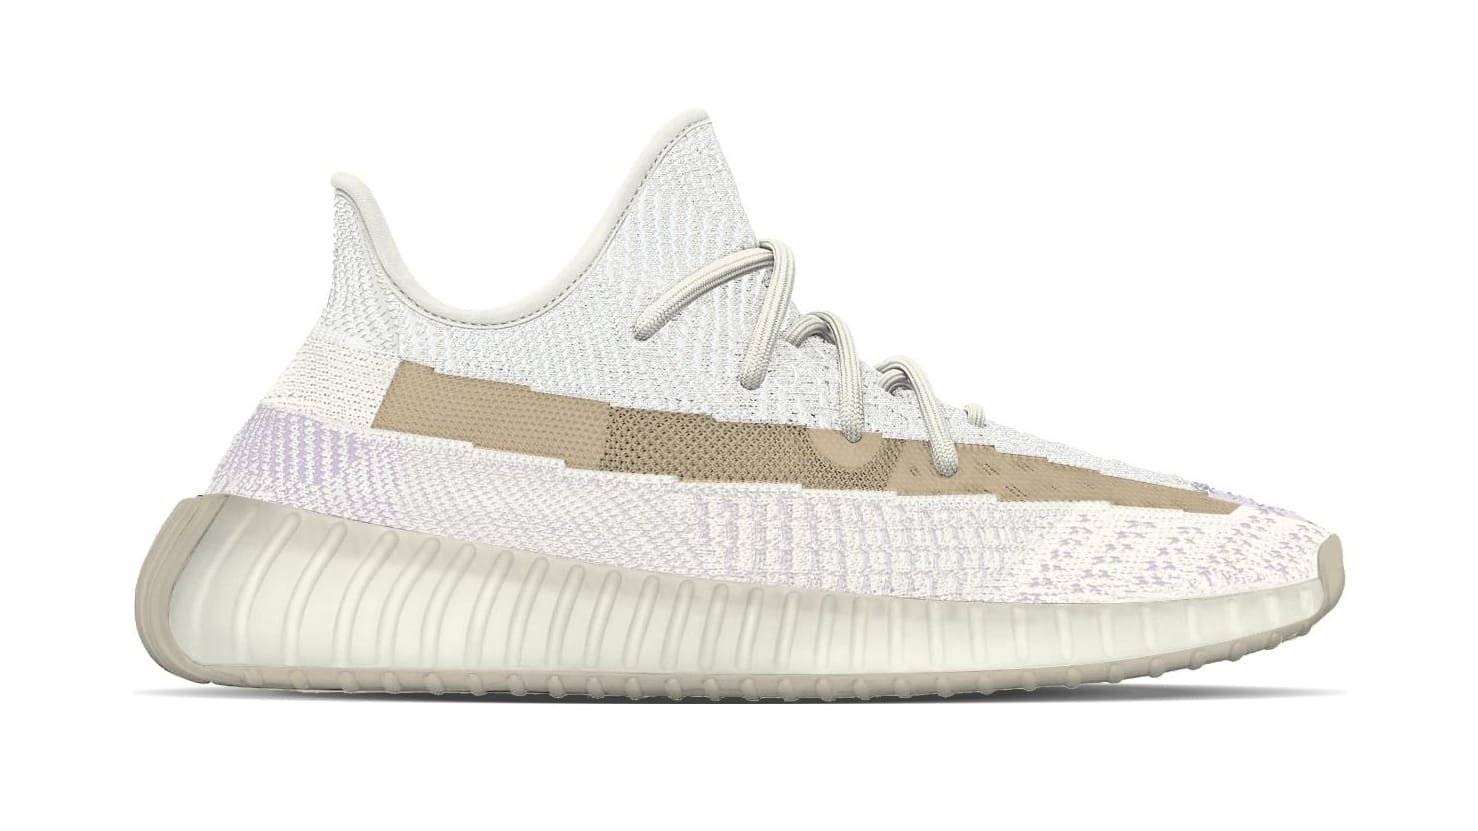 Adidas Yeezy Boost 350 V2 'Light' Lateral Mock-up